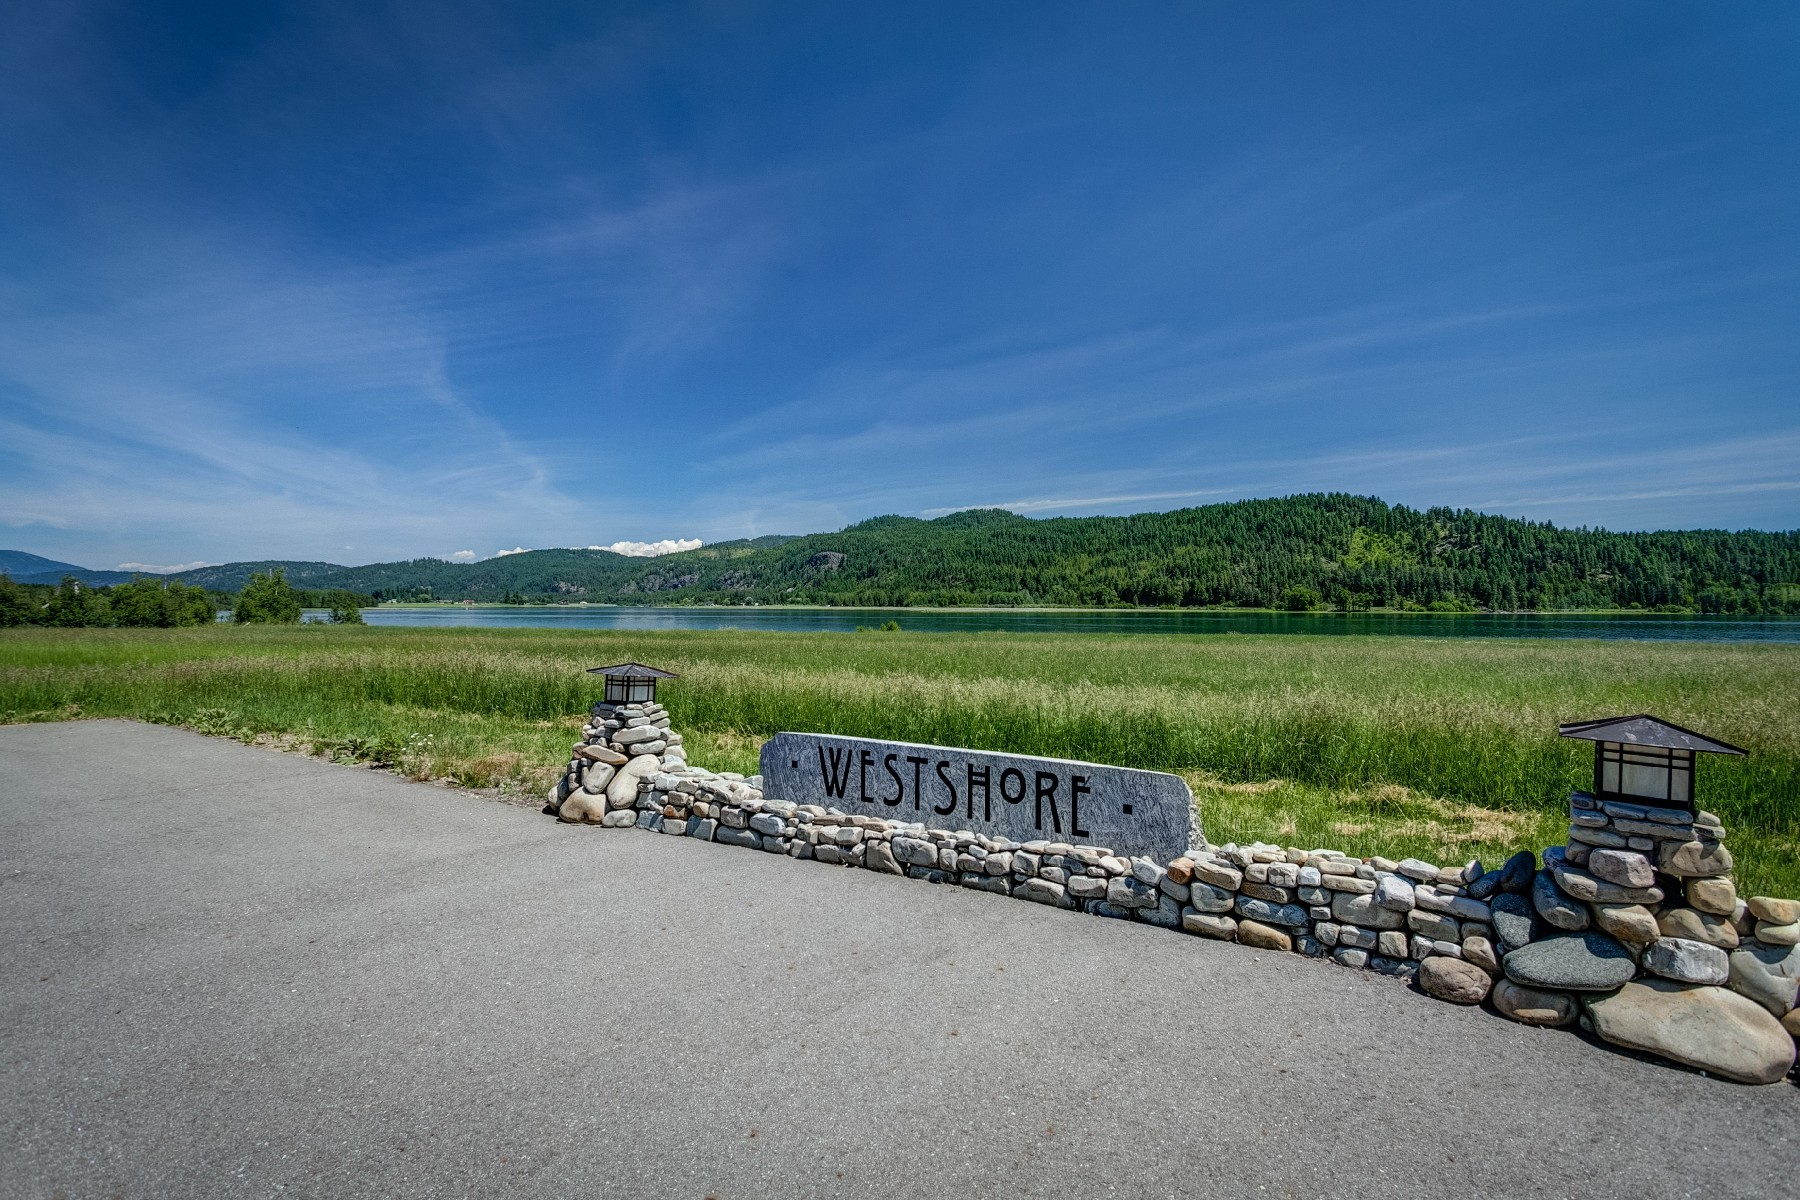 Land for Sale at Westshore Waterfront Building Sites Lot 6 Westshore Way Laclede, Idaho 83841 United States